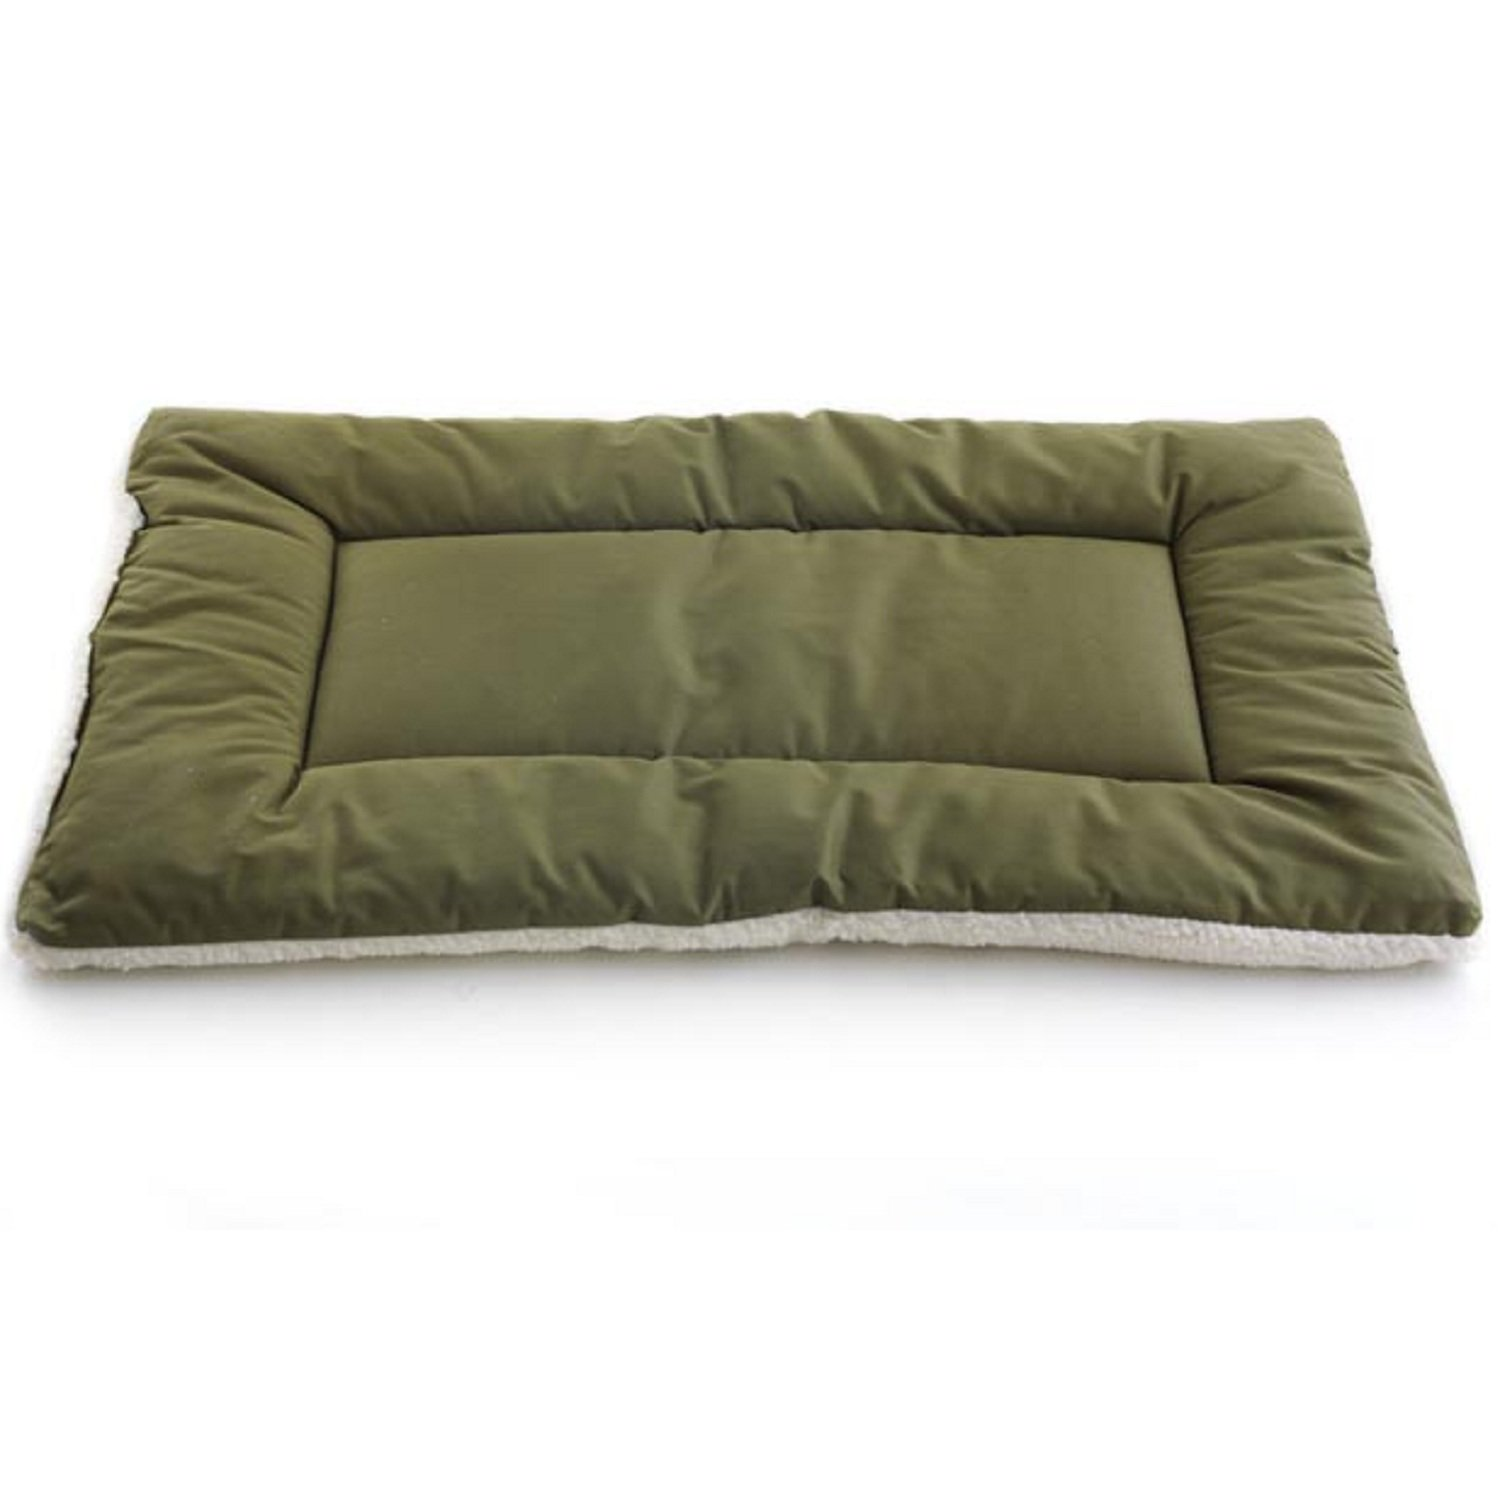 mats medium dog berber of pin moss house paws green mat crate fleece